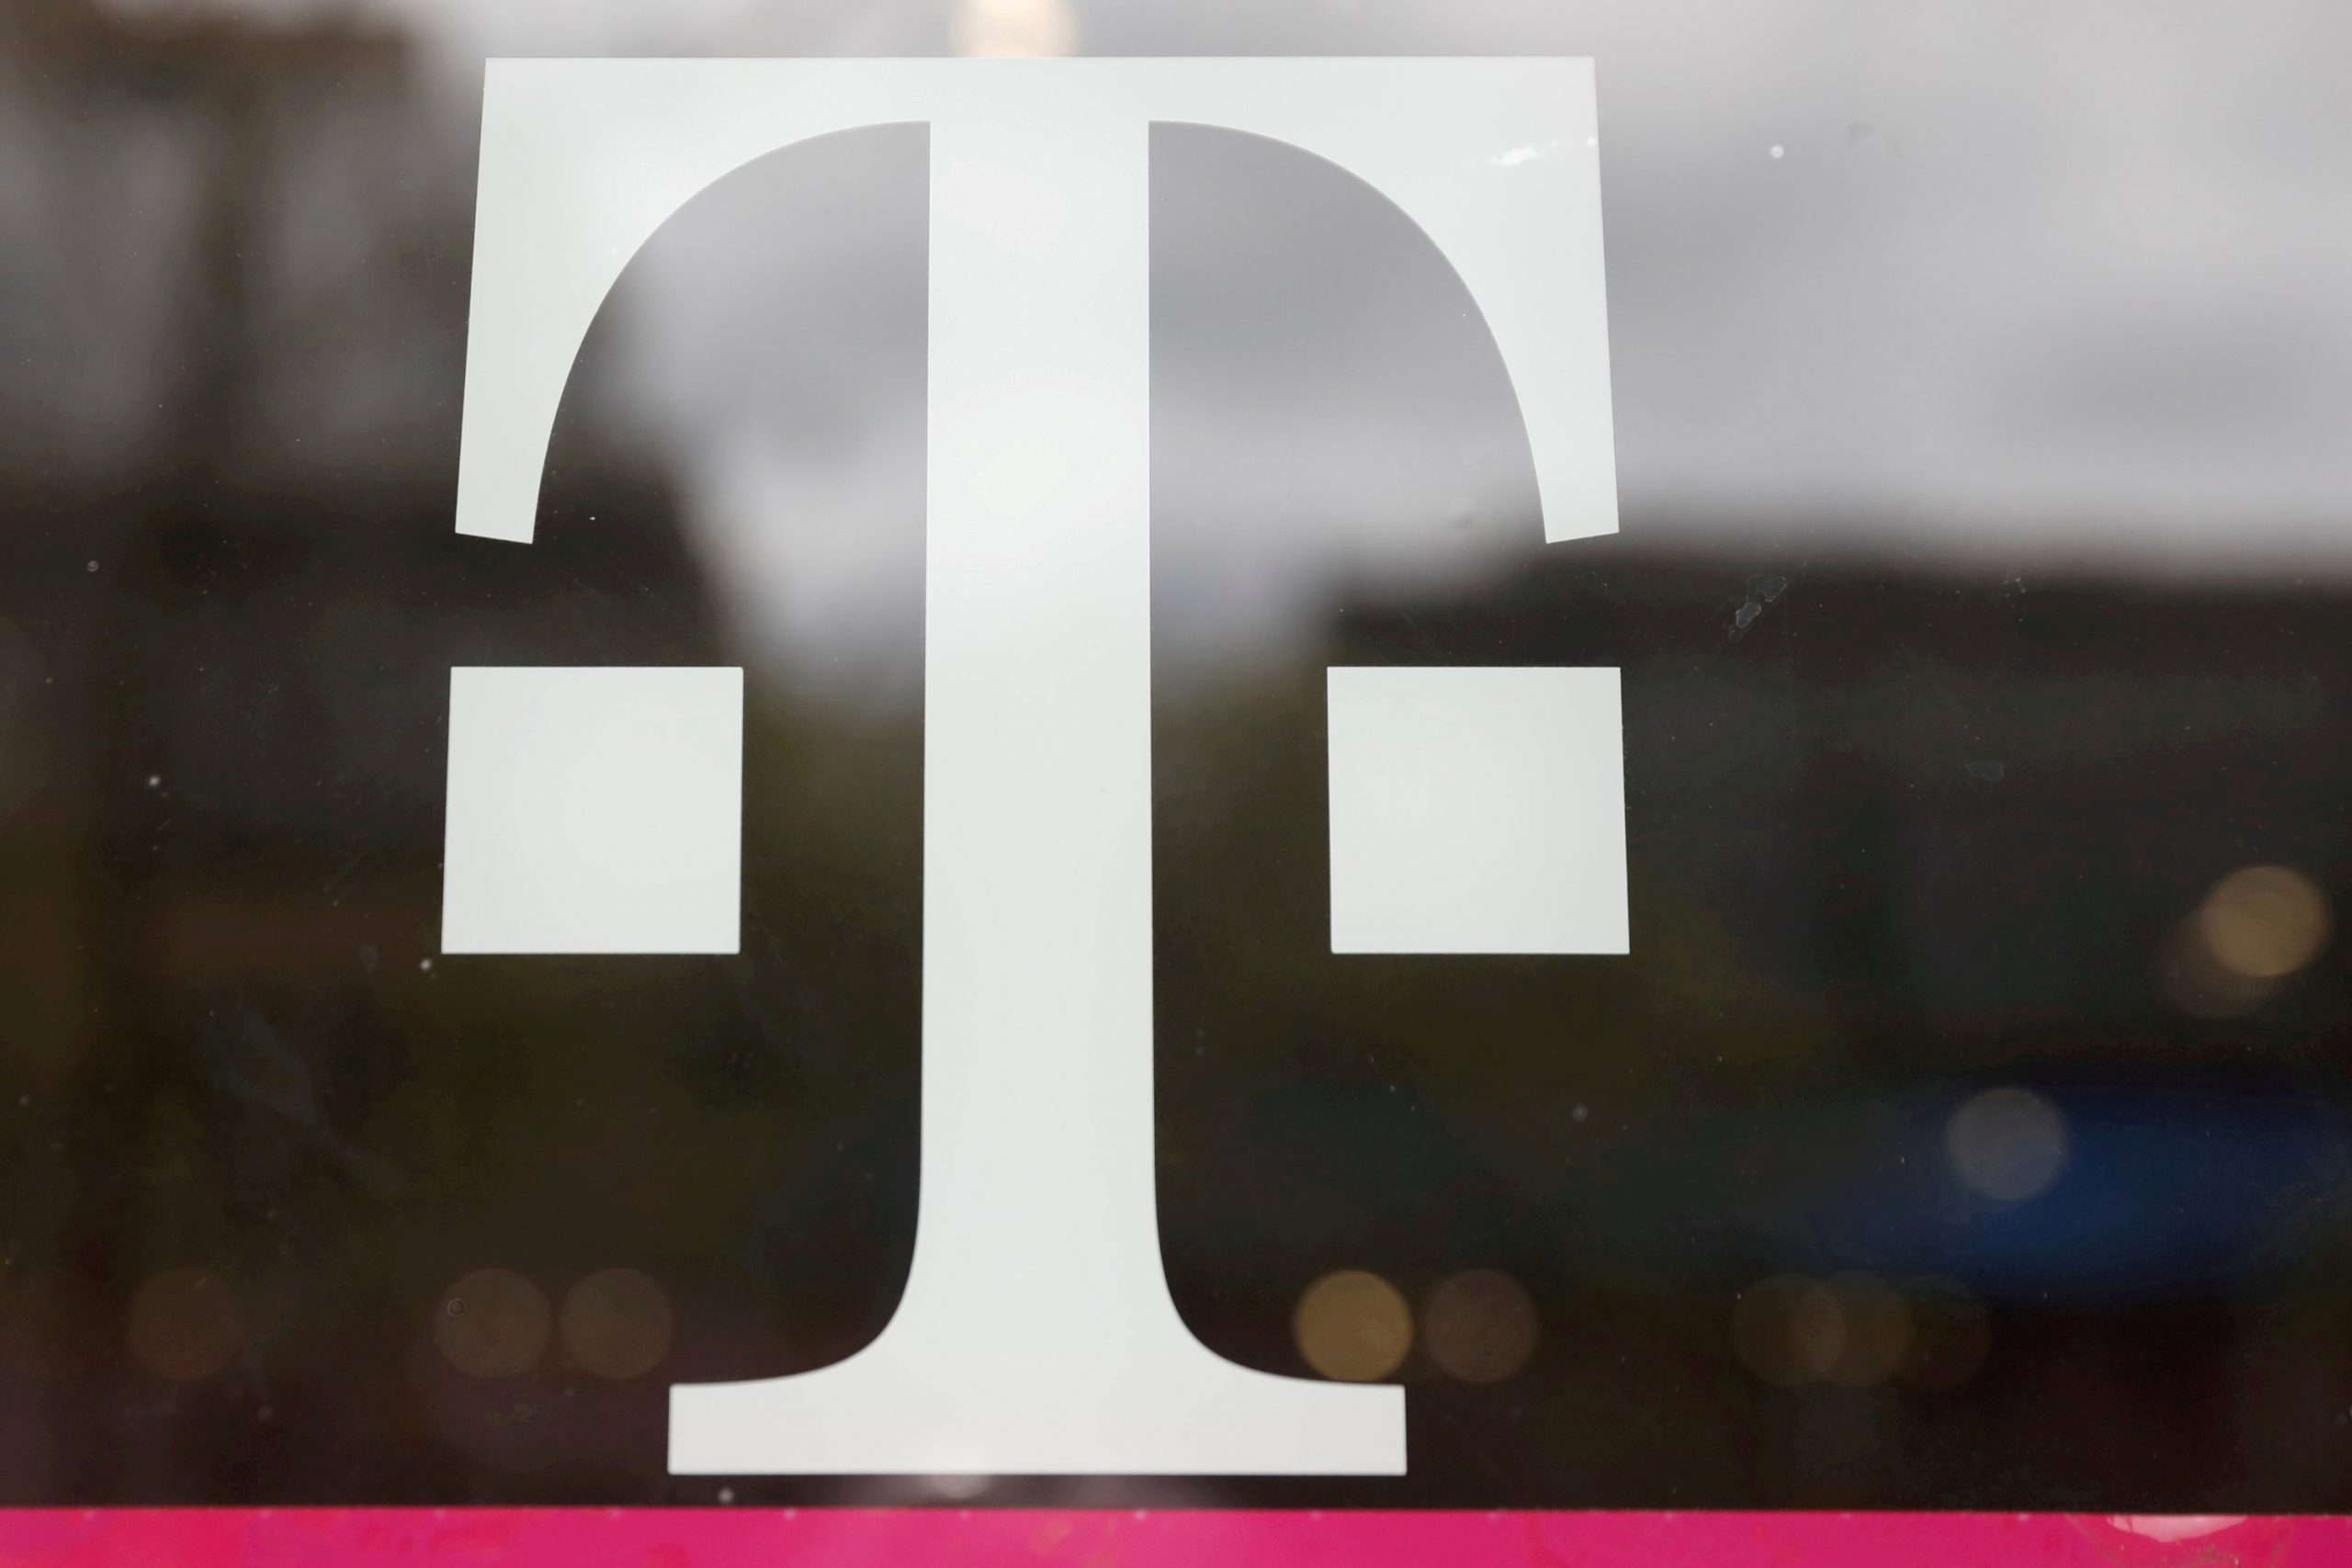 T-Mobile 'truly sorry' over user data breach of 50M customers